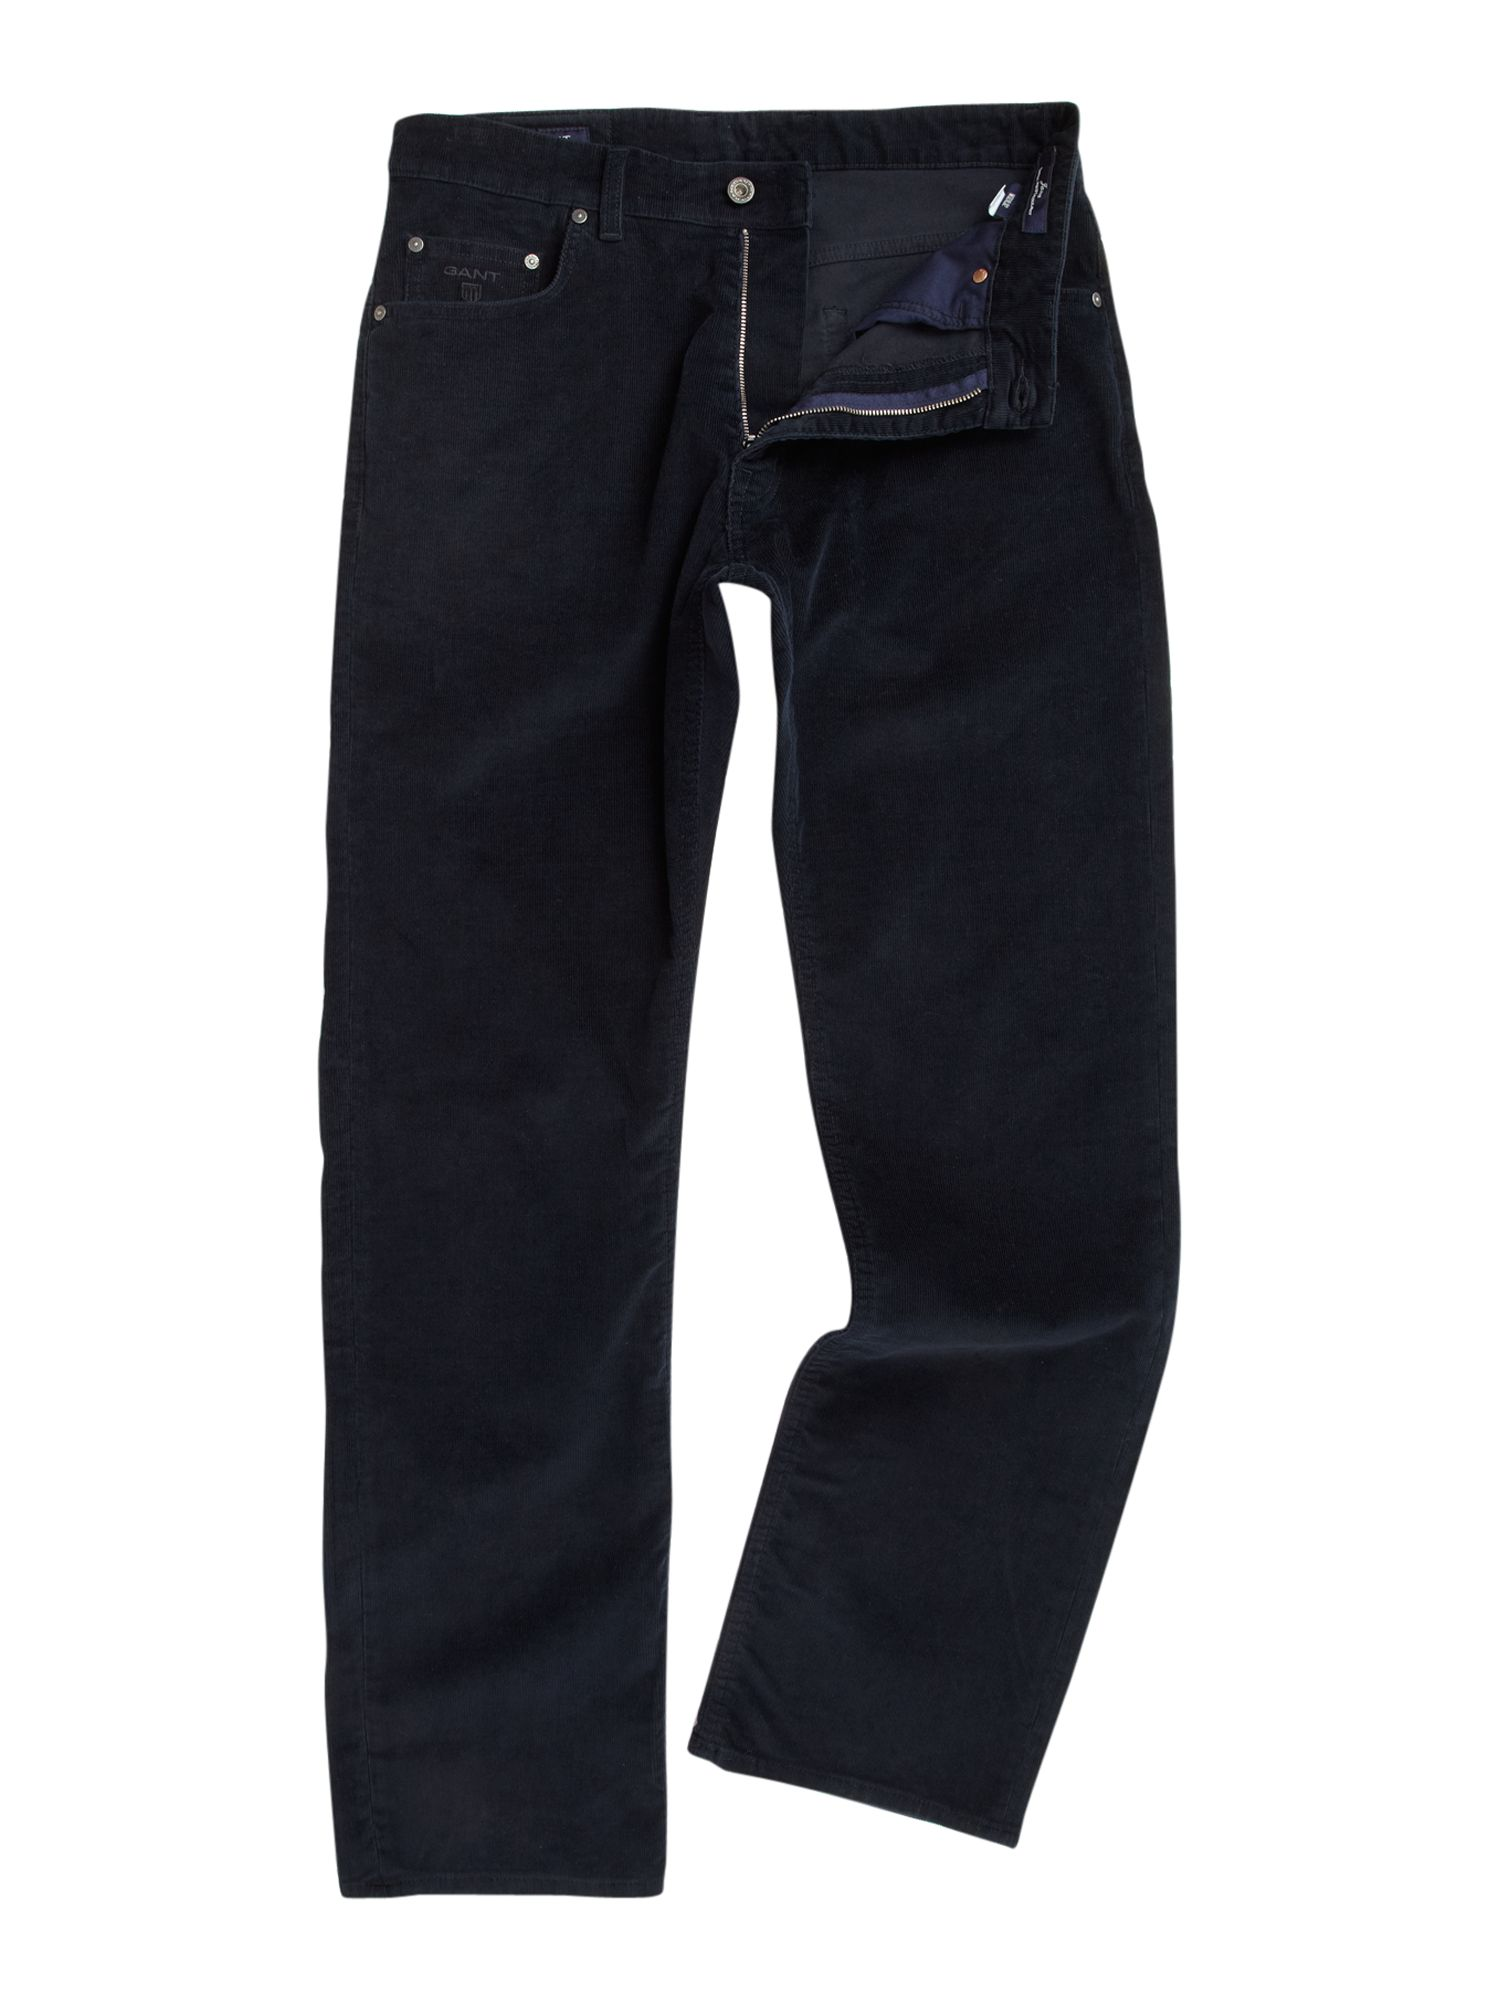 Regular fit stretch corduroy trousers